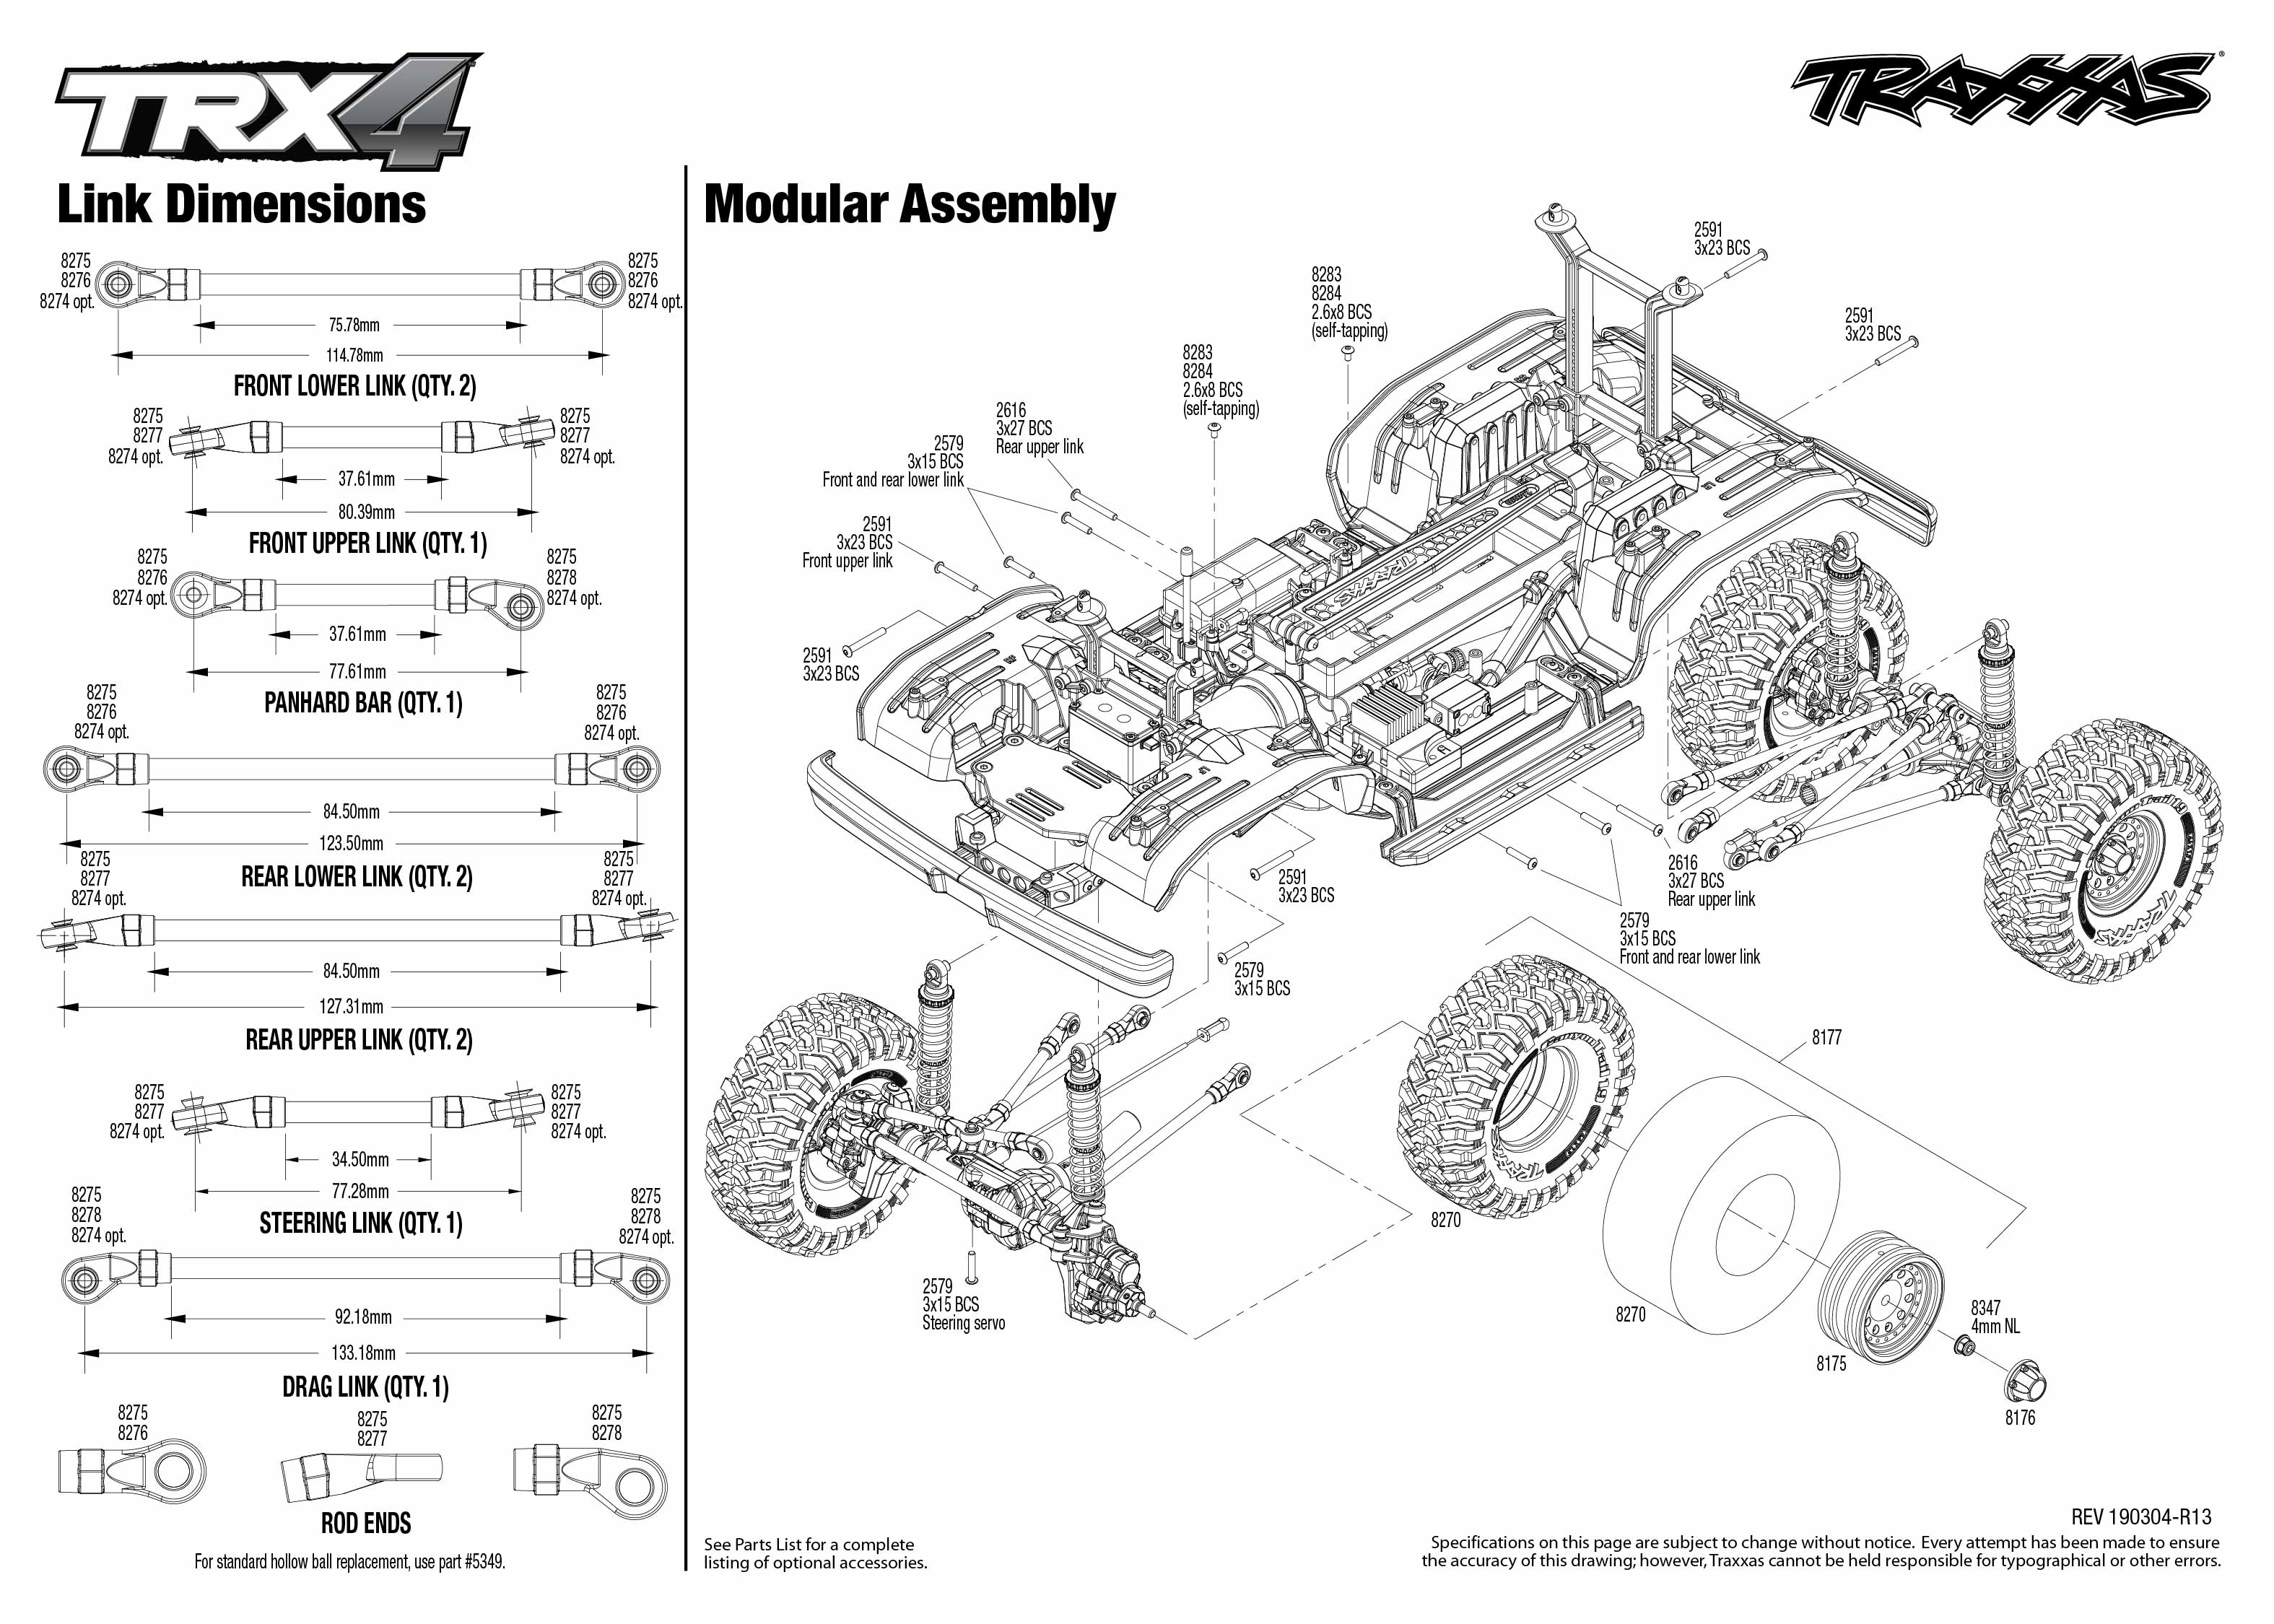 Ford Bronco 4wd Electric Truck With Tqi Traxxas Link